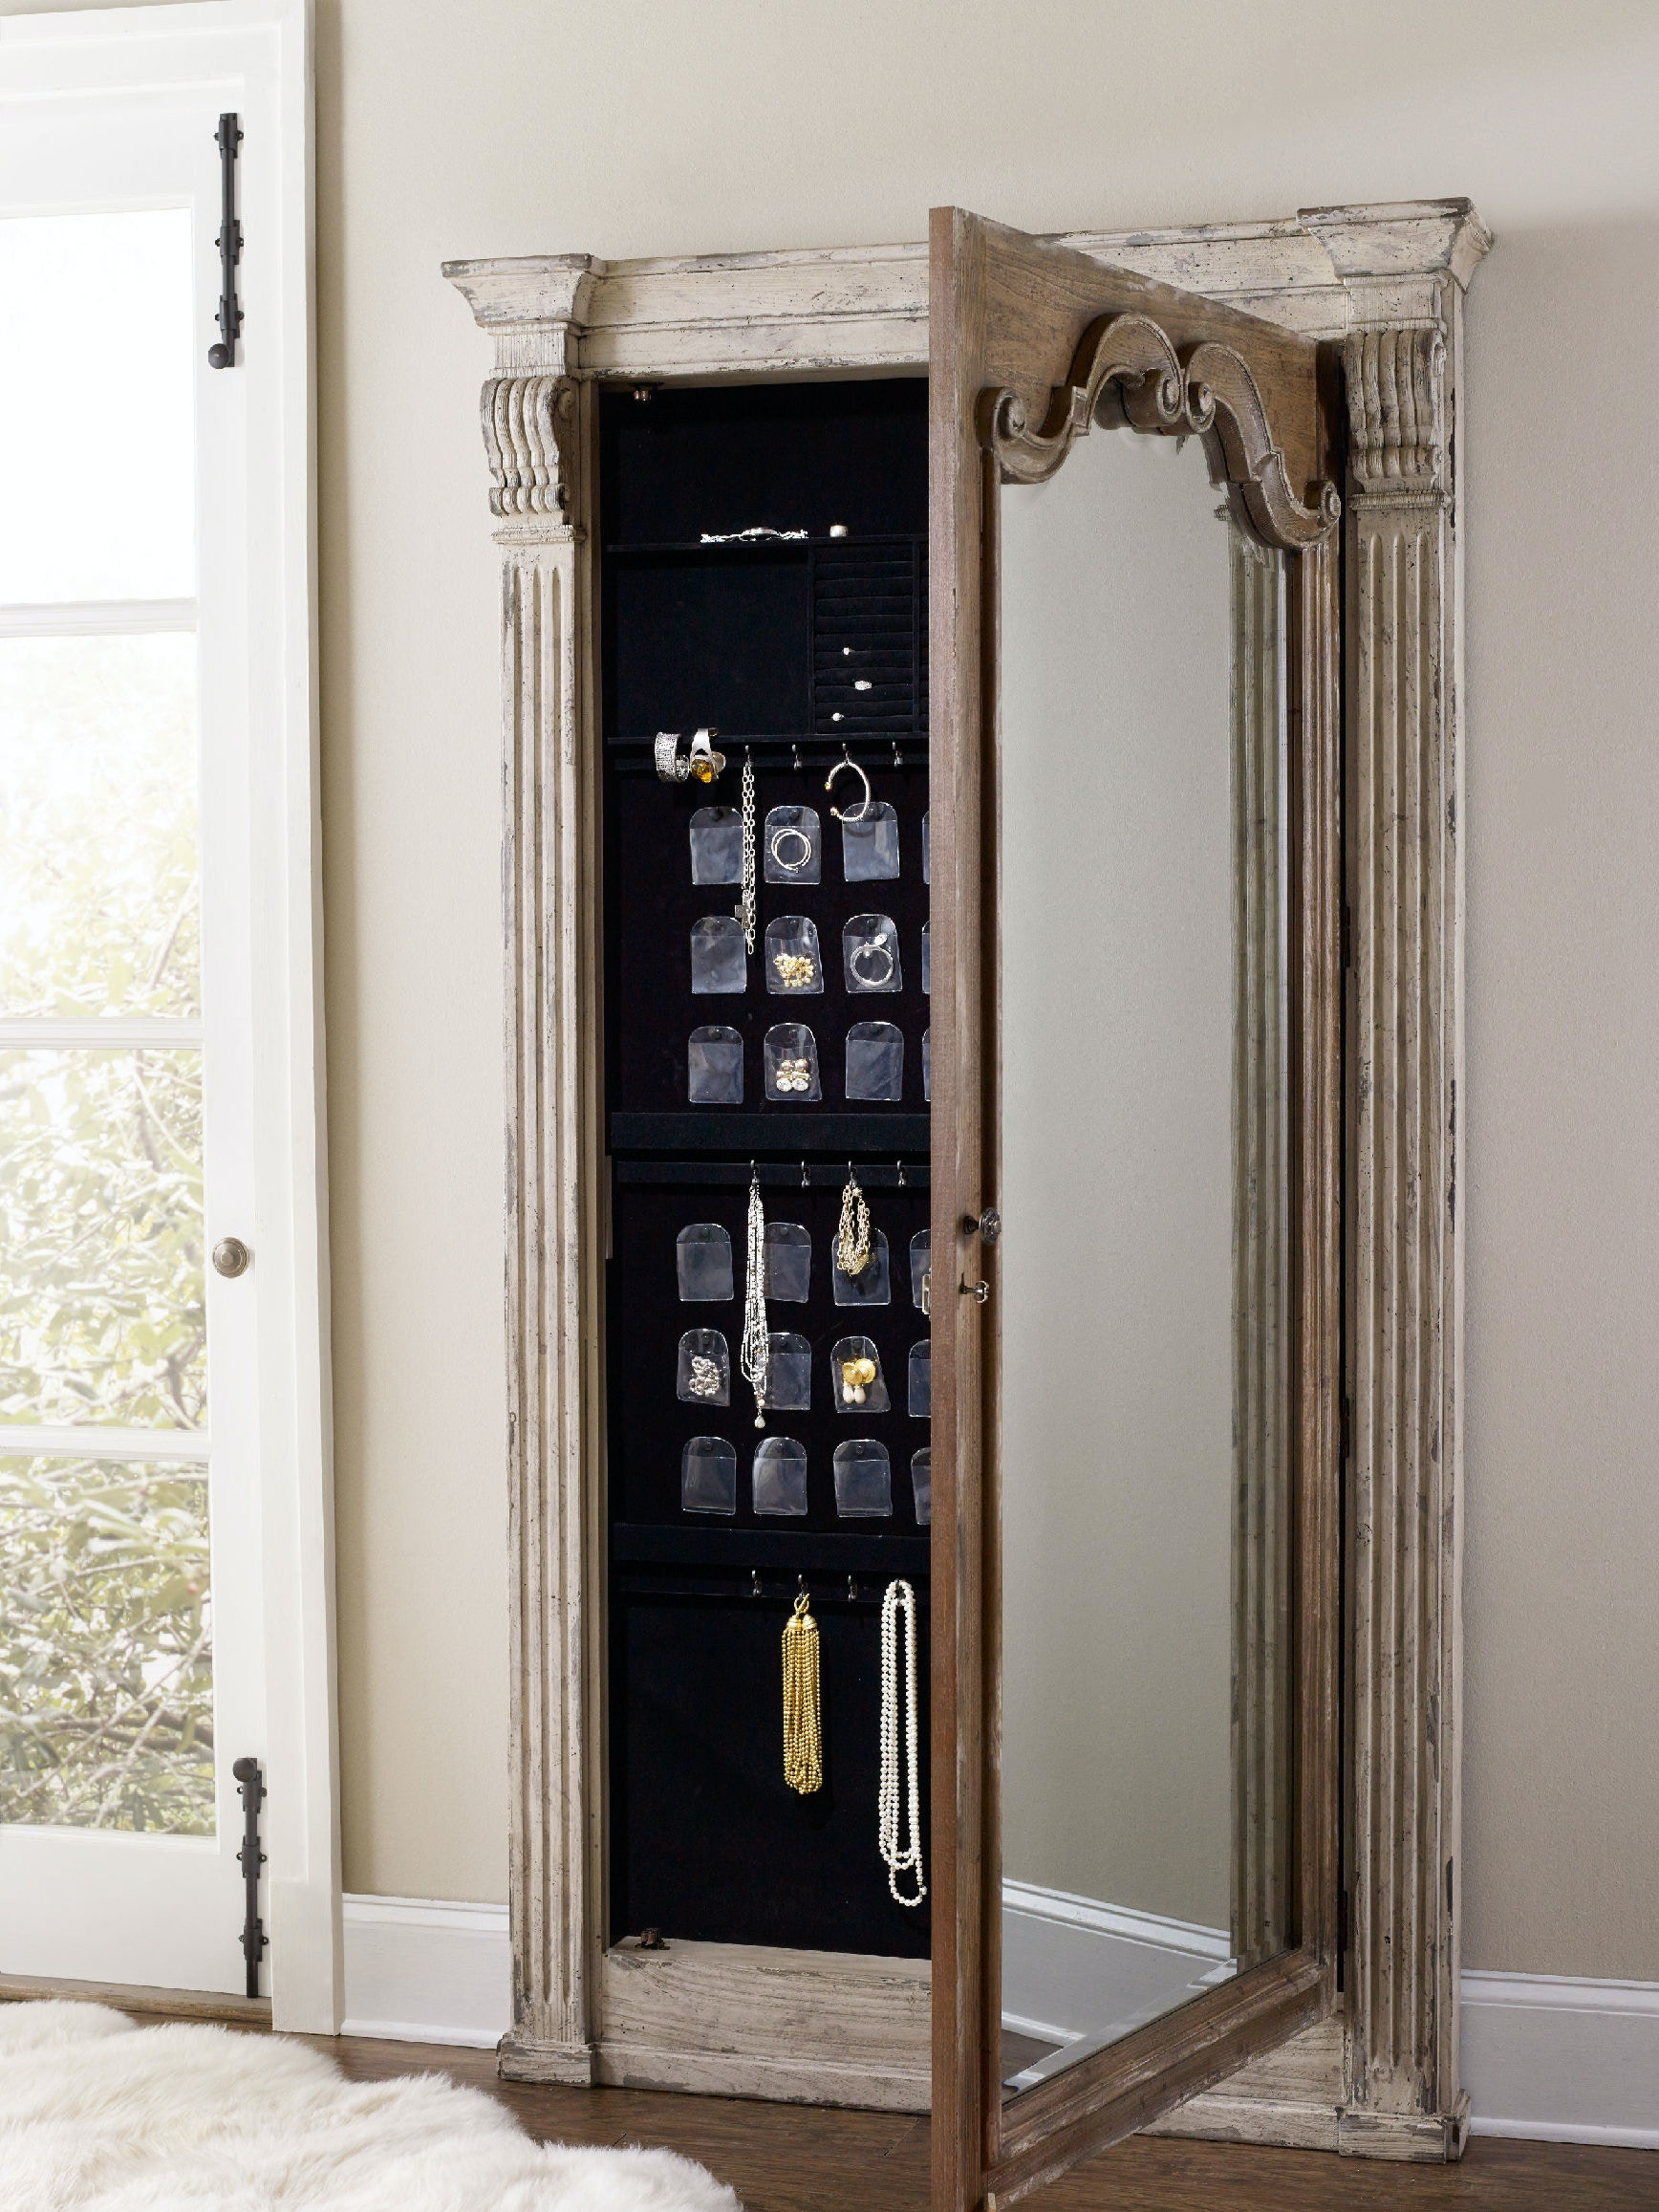 Delicieux Hooker Furniture Chatelet Floor Mirror W/Jewelry Armoire Storage 5351 50003